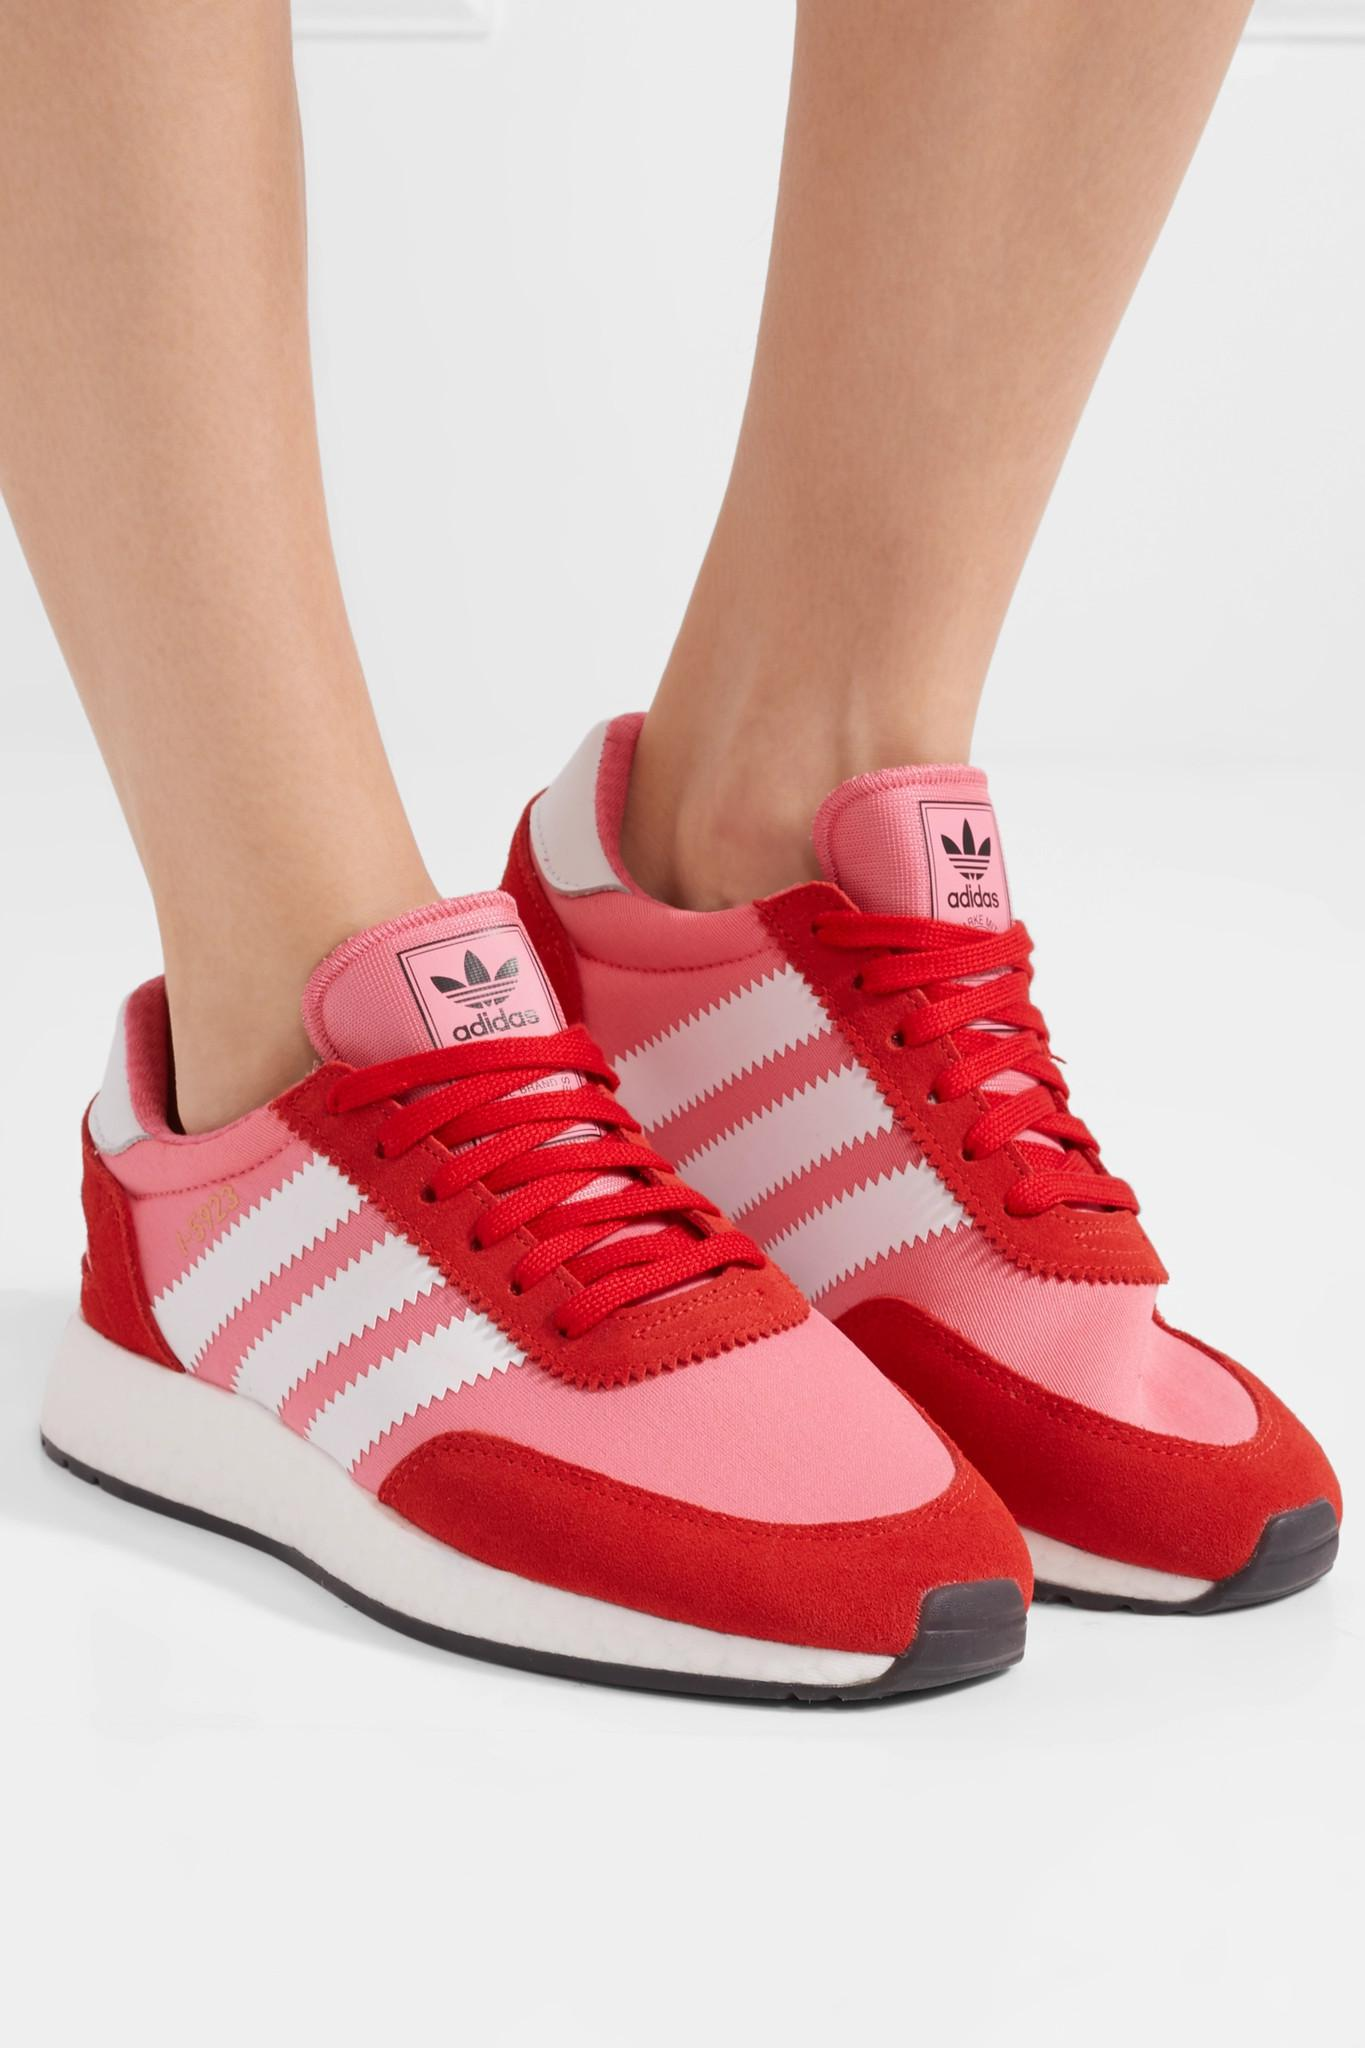 8c5e446b8b2420 Lyst - adidas Originals I-5923 Neoprene And Suede Sneakers in Pink